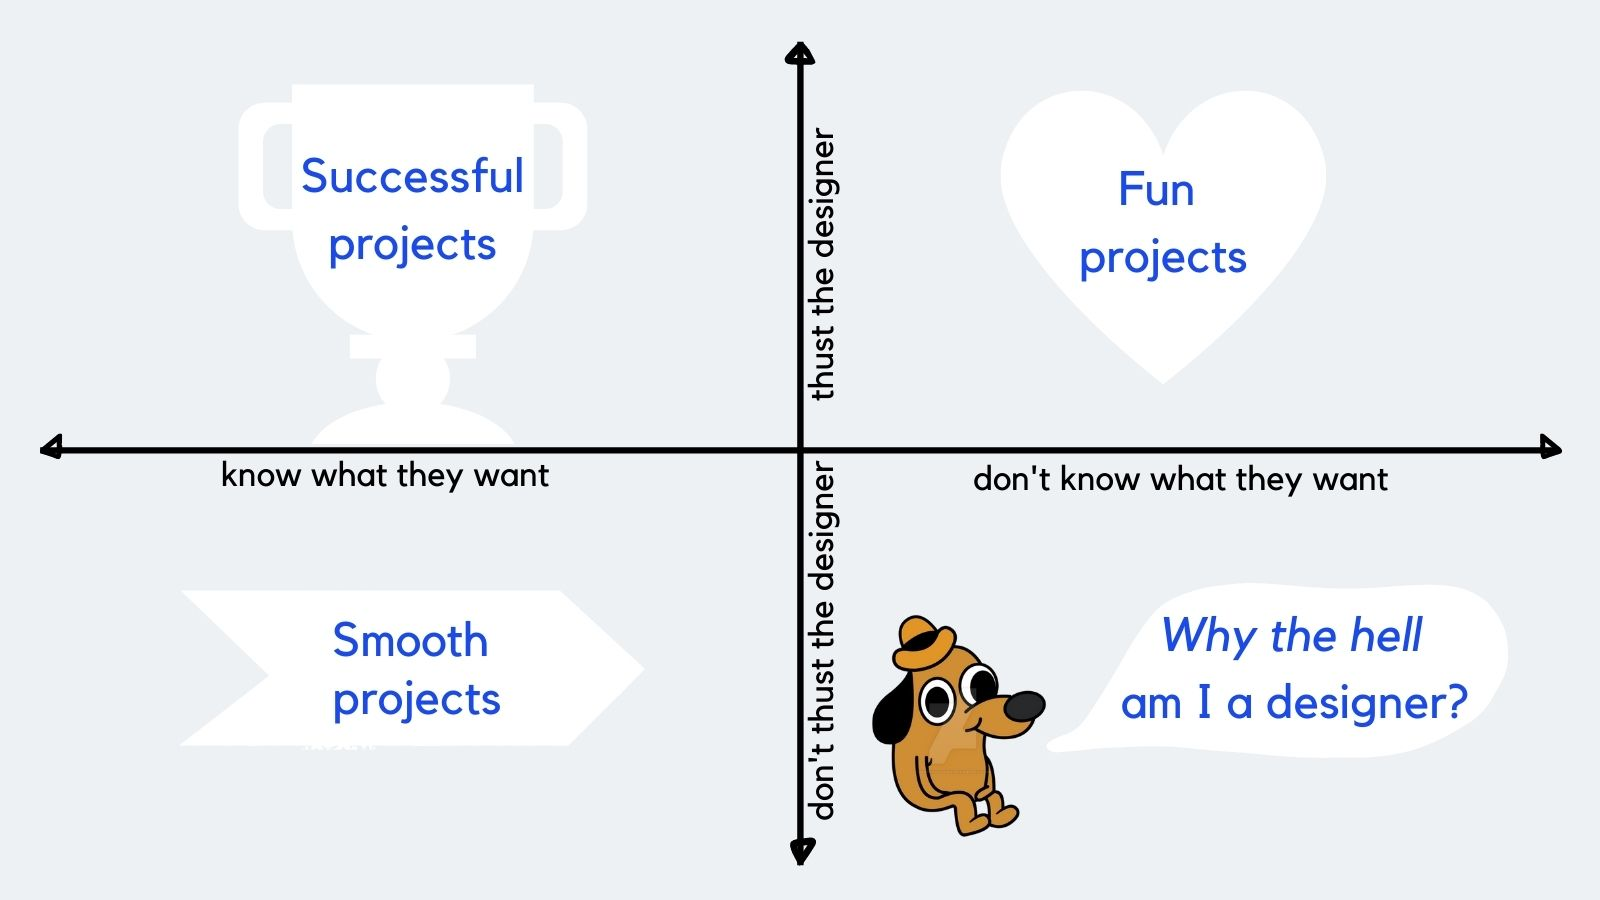 typology of projects based on the level of the customer's comprehension